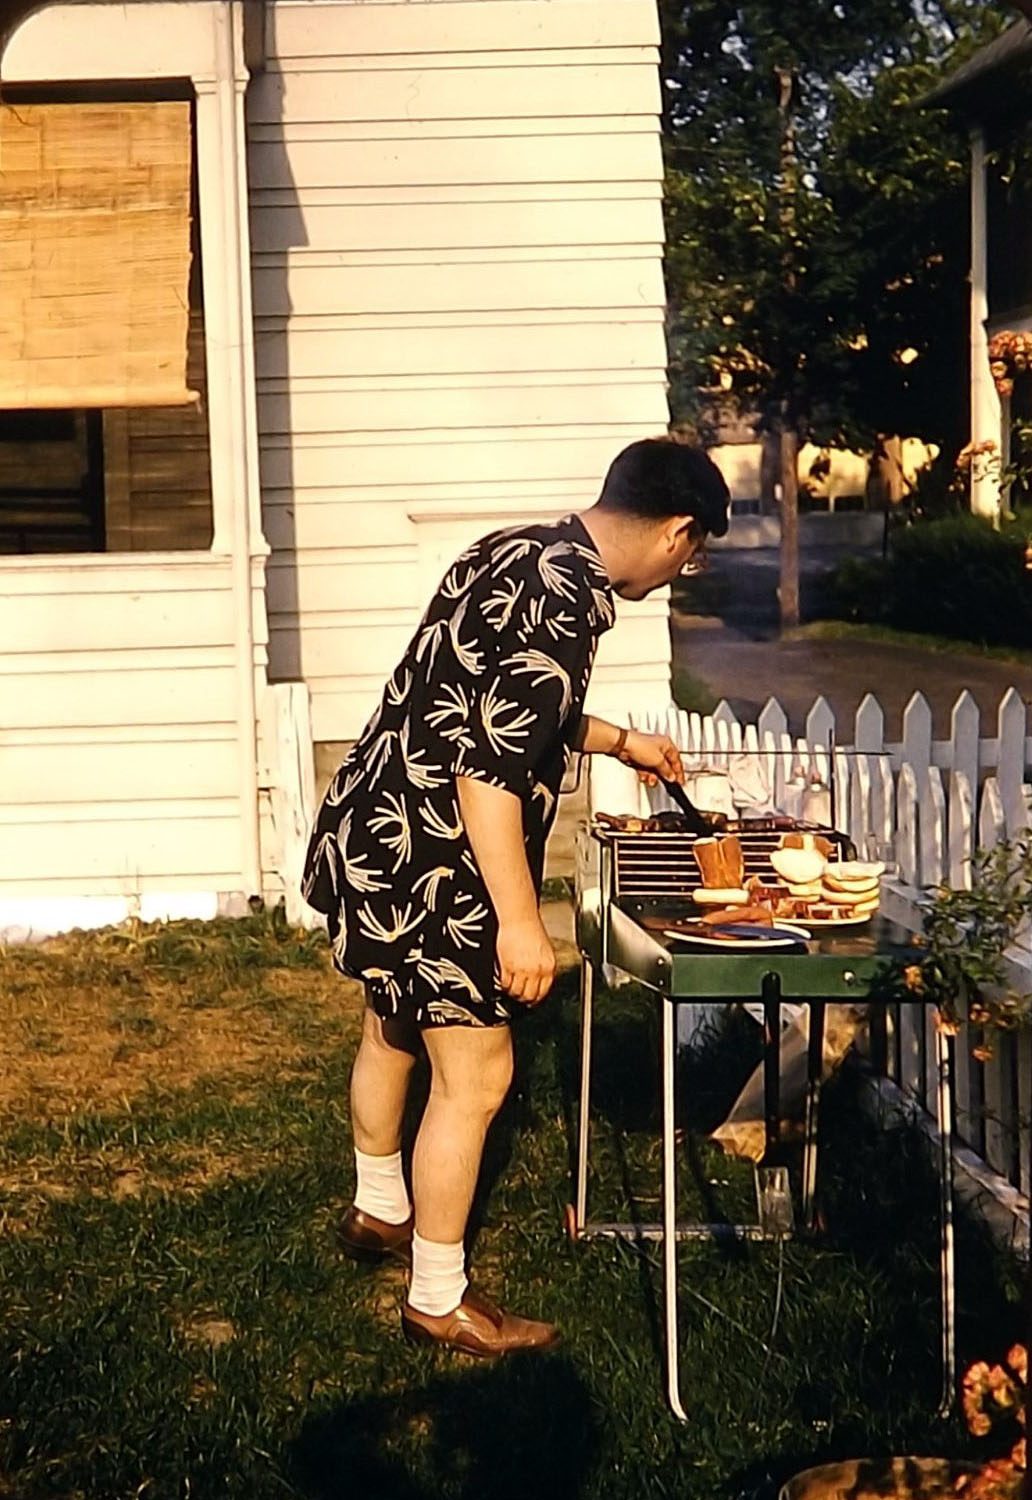 Cooking out on the grill, 1950s